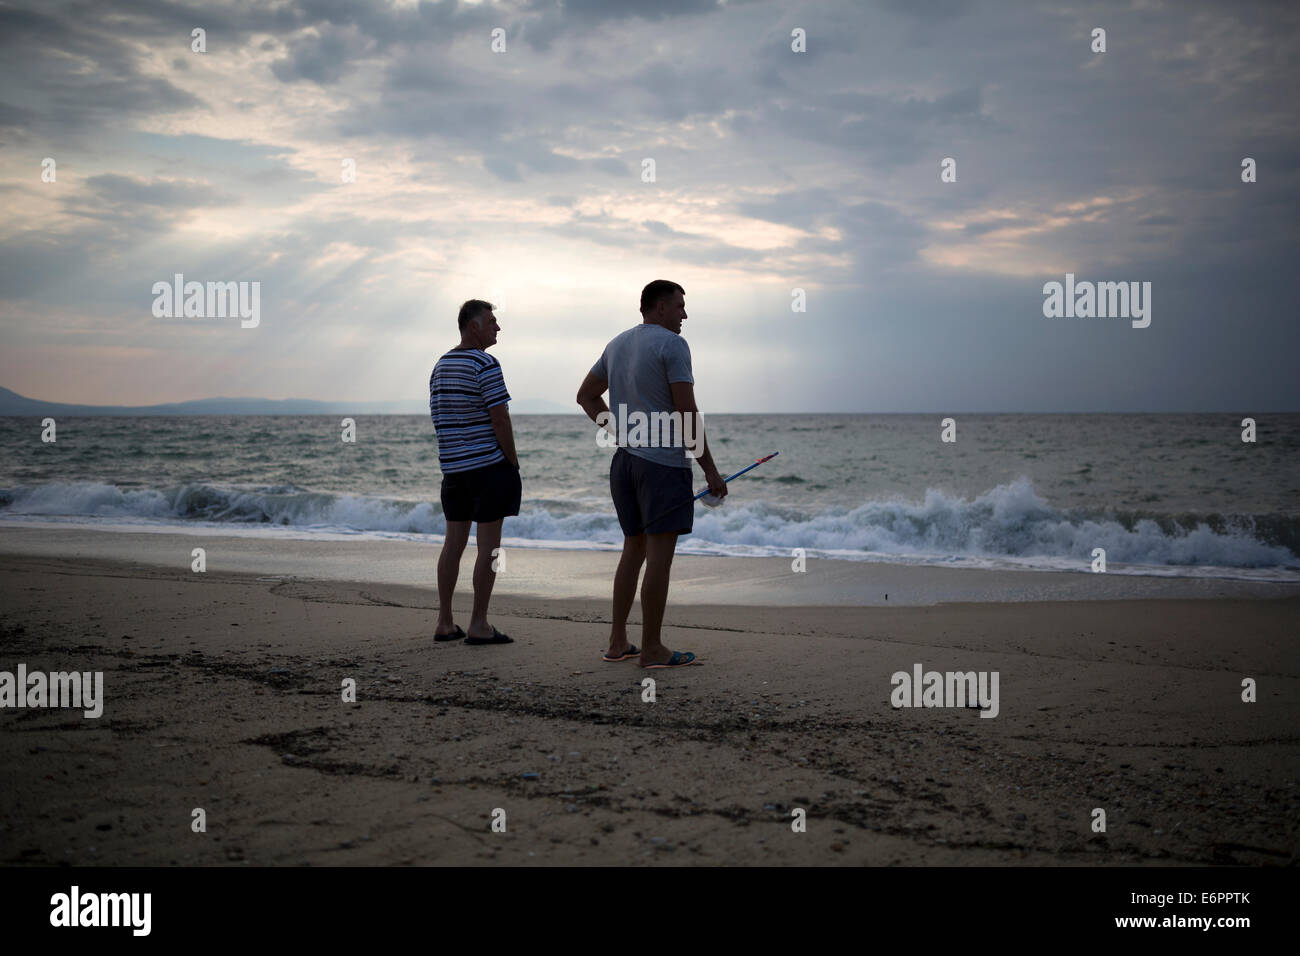 Thessaloniki, Greece. 29th August, 2014. Two men gaze to sea during a morning walk on the beach. Morning stroll - Stock Image